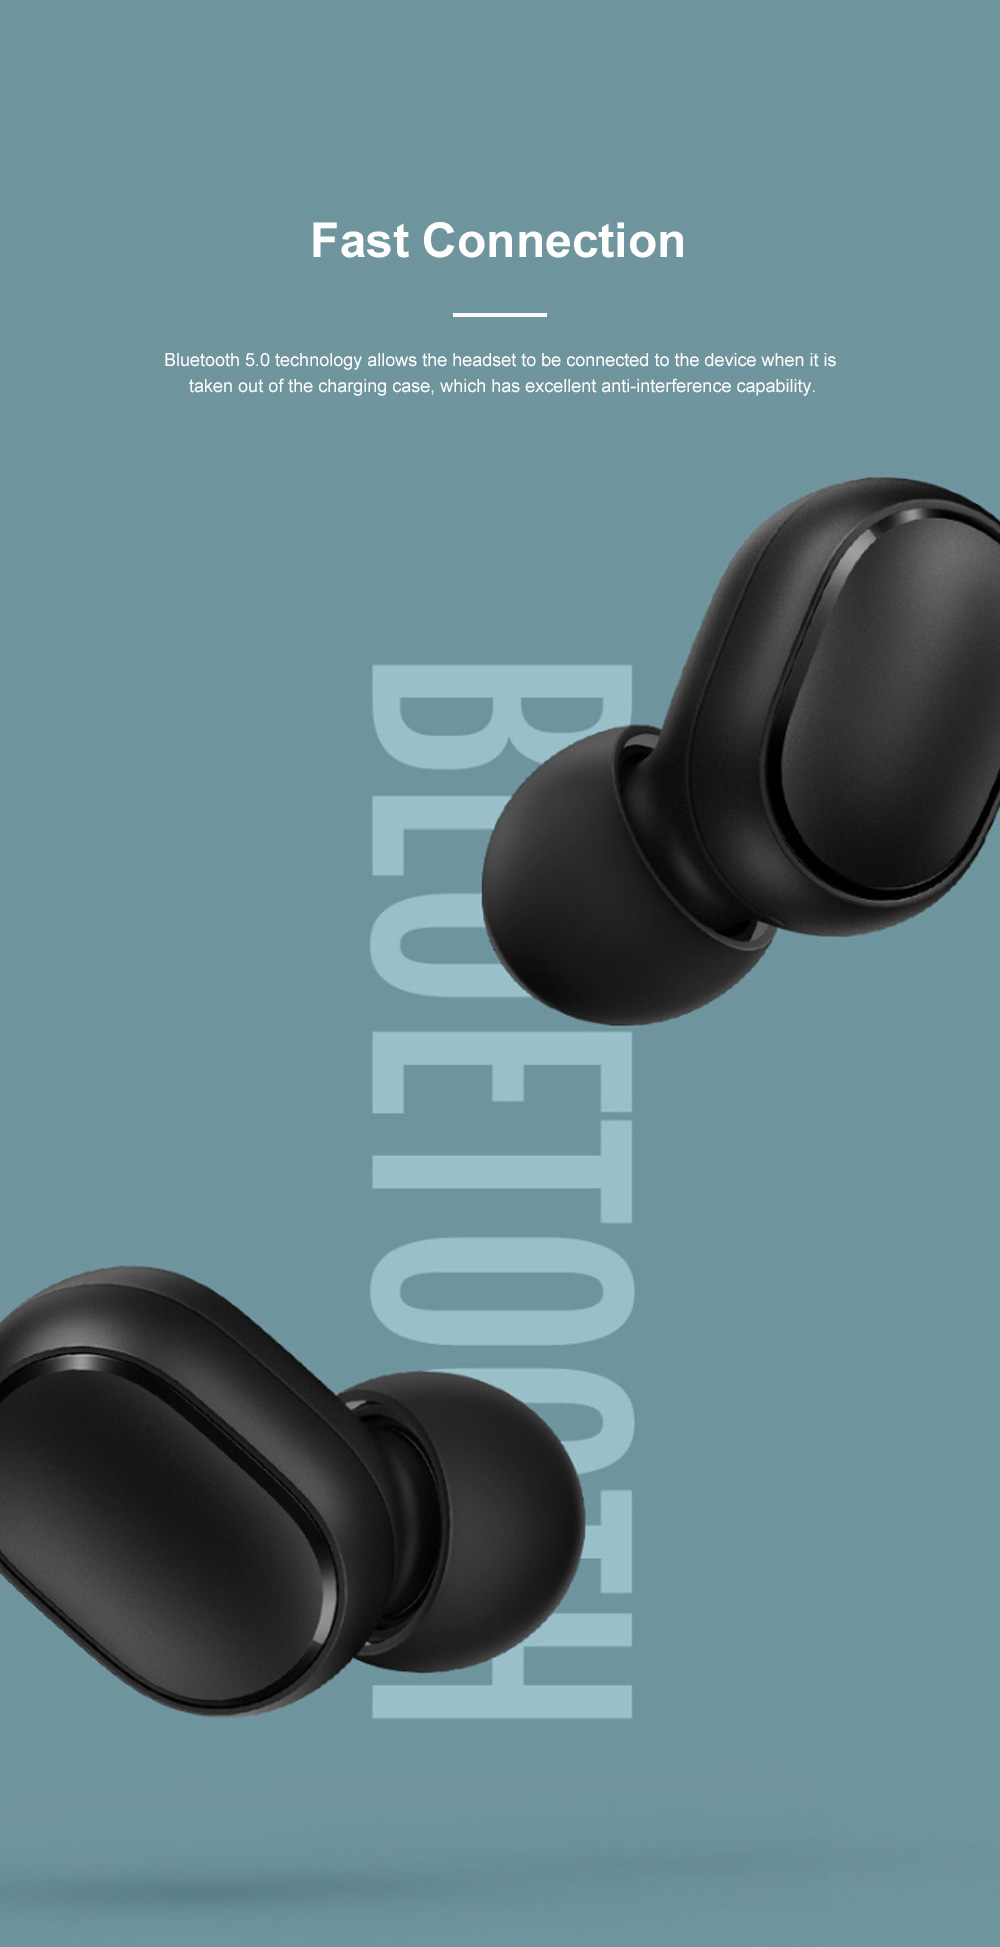 Redmi Airdots Bluetooth 5.0 Wireless Headset Fast Connecting Earphone with Charging Case and Voice Control 7